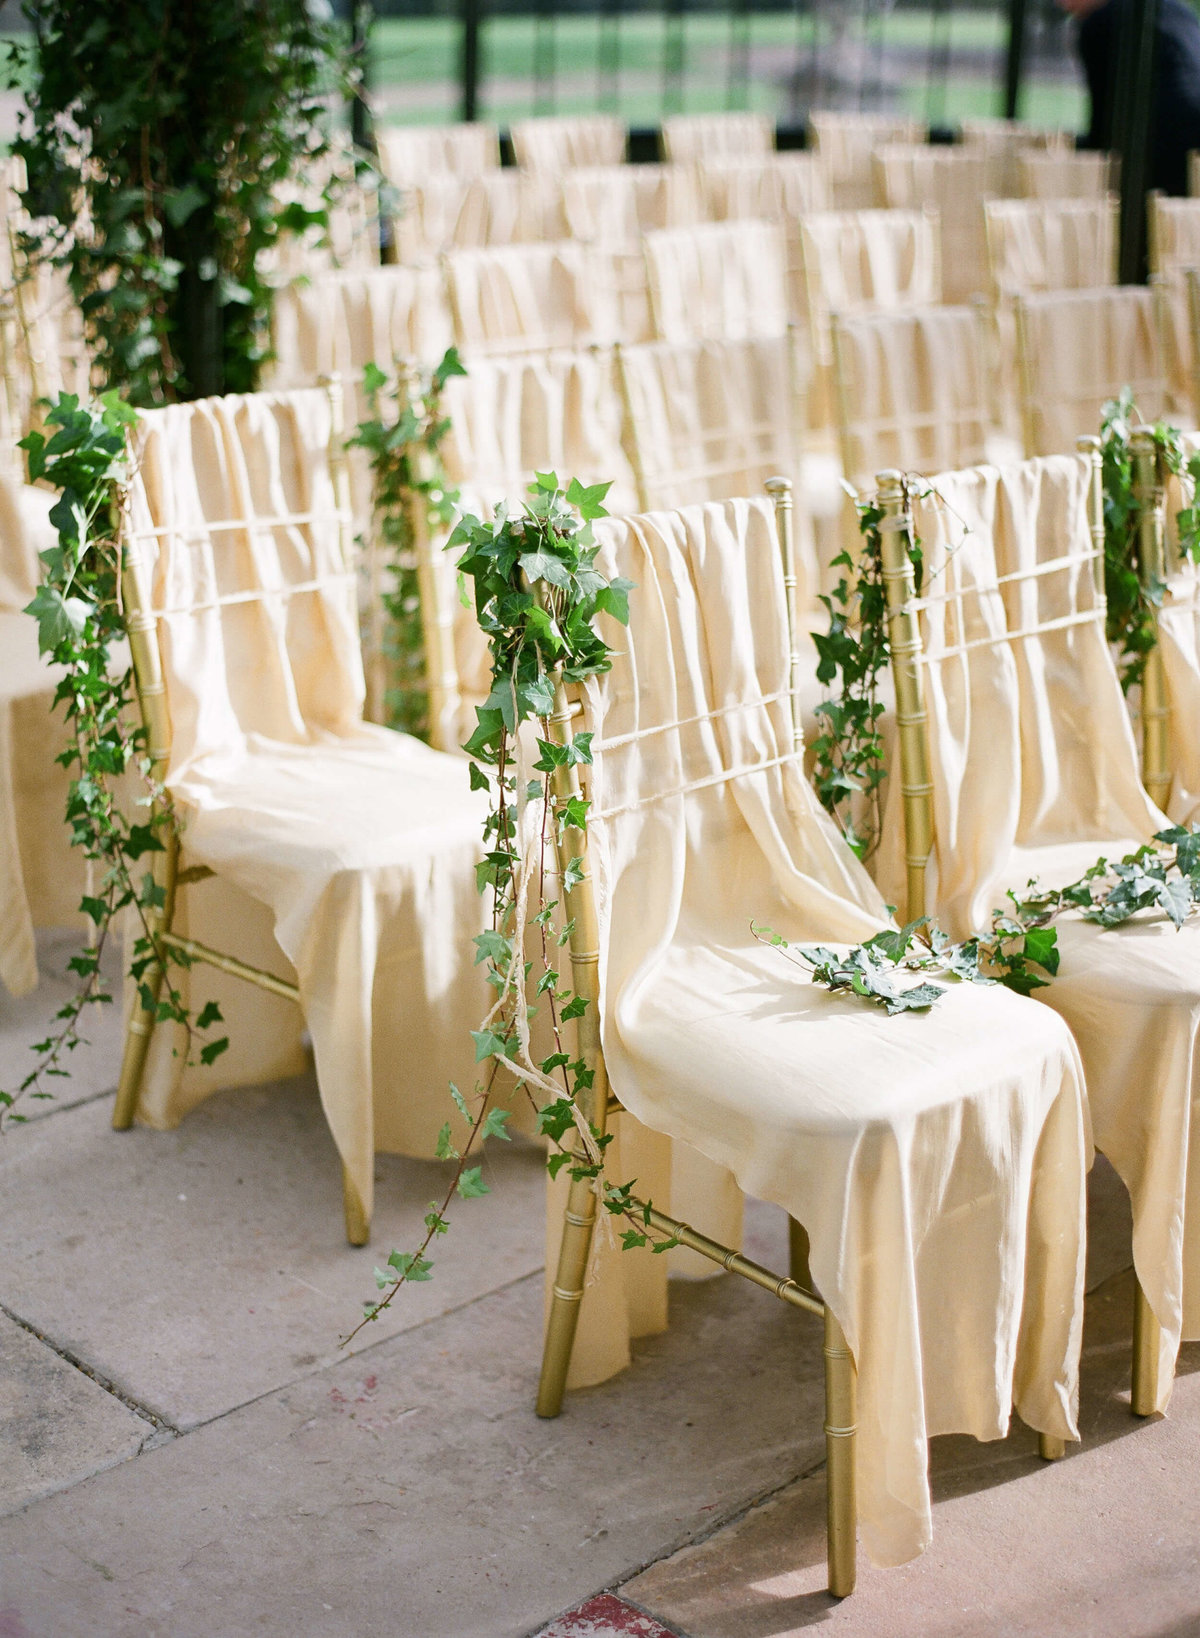 51-KTMerry-wedding-photography-ceremoney-chairs-covered